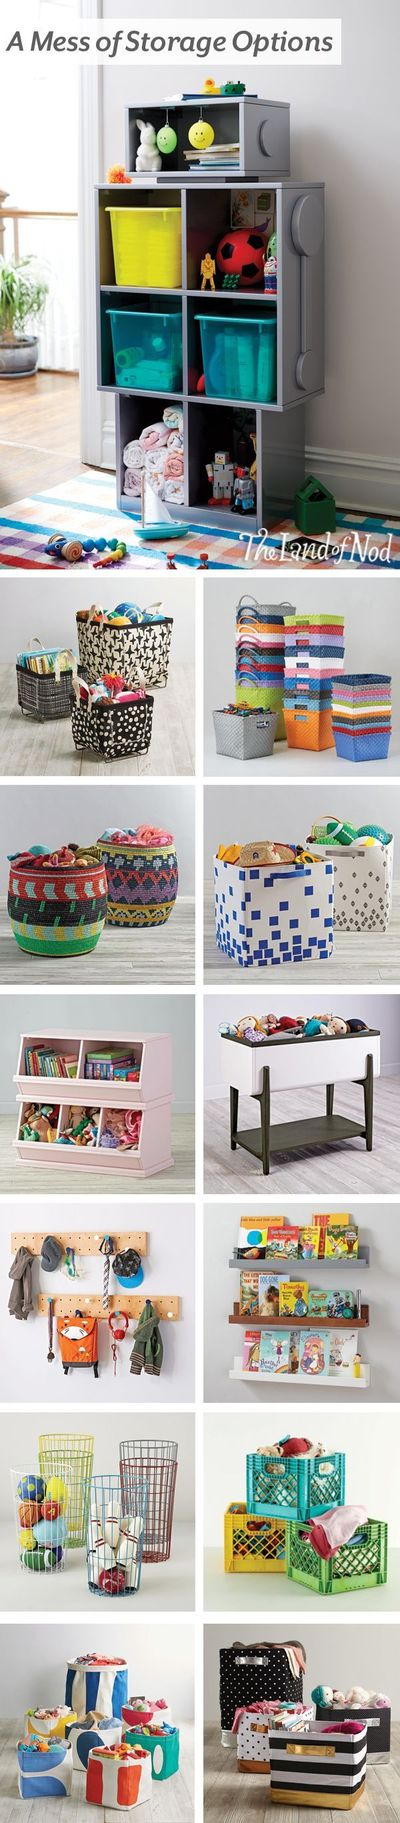 Dive into spring cleaning with the help of The Land of Nod's storage picks. Roomy bins and baskets can hold all of your kid's favorite toys and books. Plus, they look at home in the playroom, bedroom or even the living room.